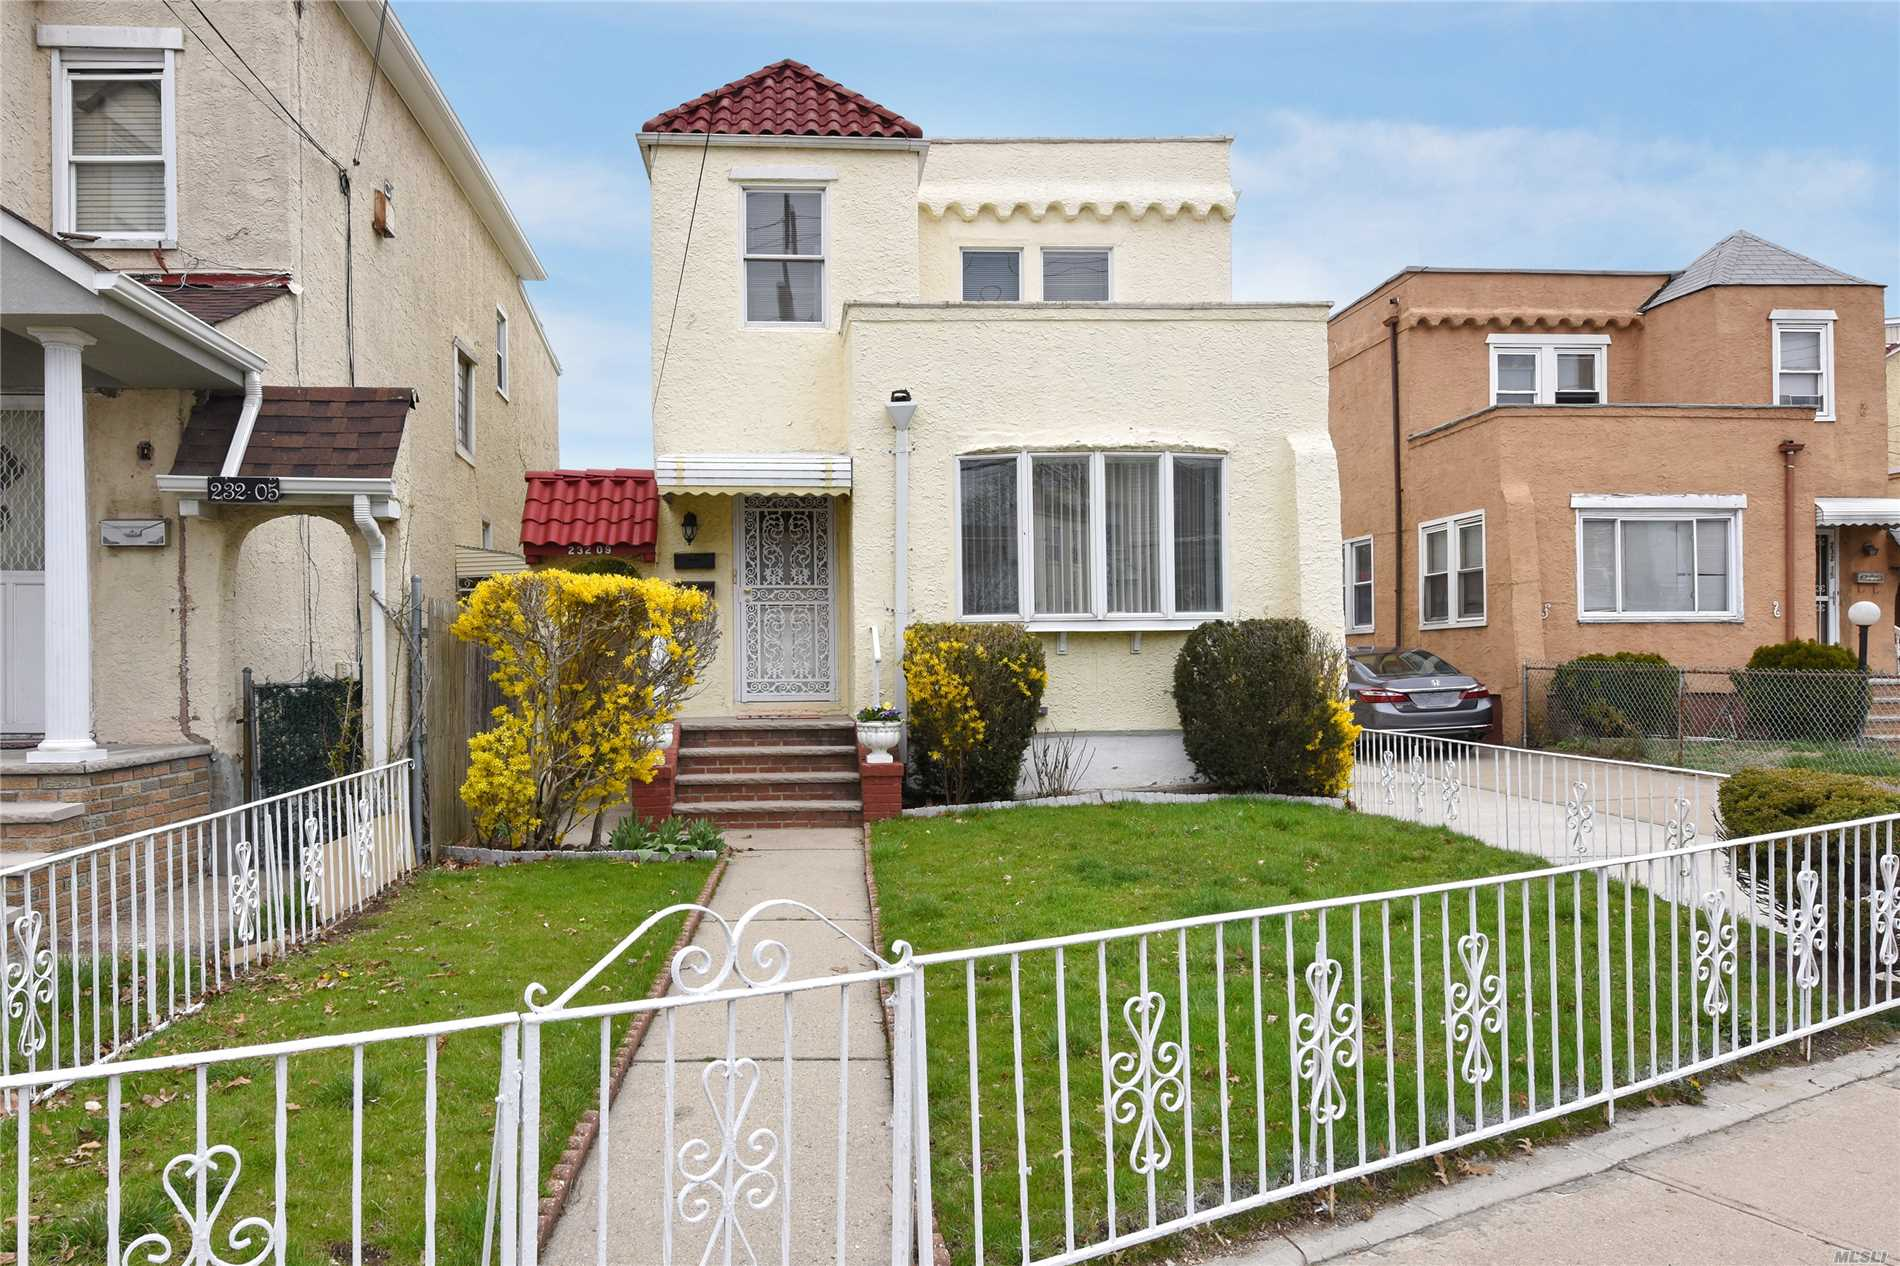 Spacious detached 2 story home in Laurelton. Sunny and spacious bedrooms with plenty of storage. It has a fully finished basement with a side entance. This property features a large front and backyard with driveway and garage.